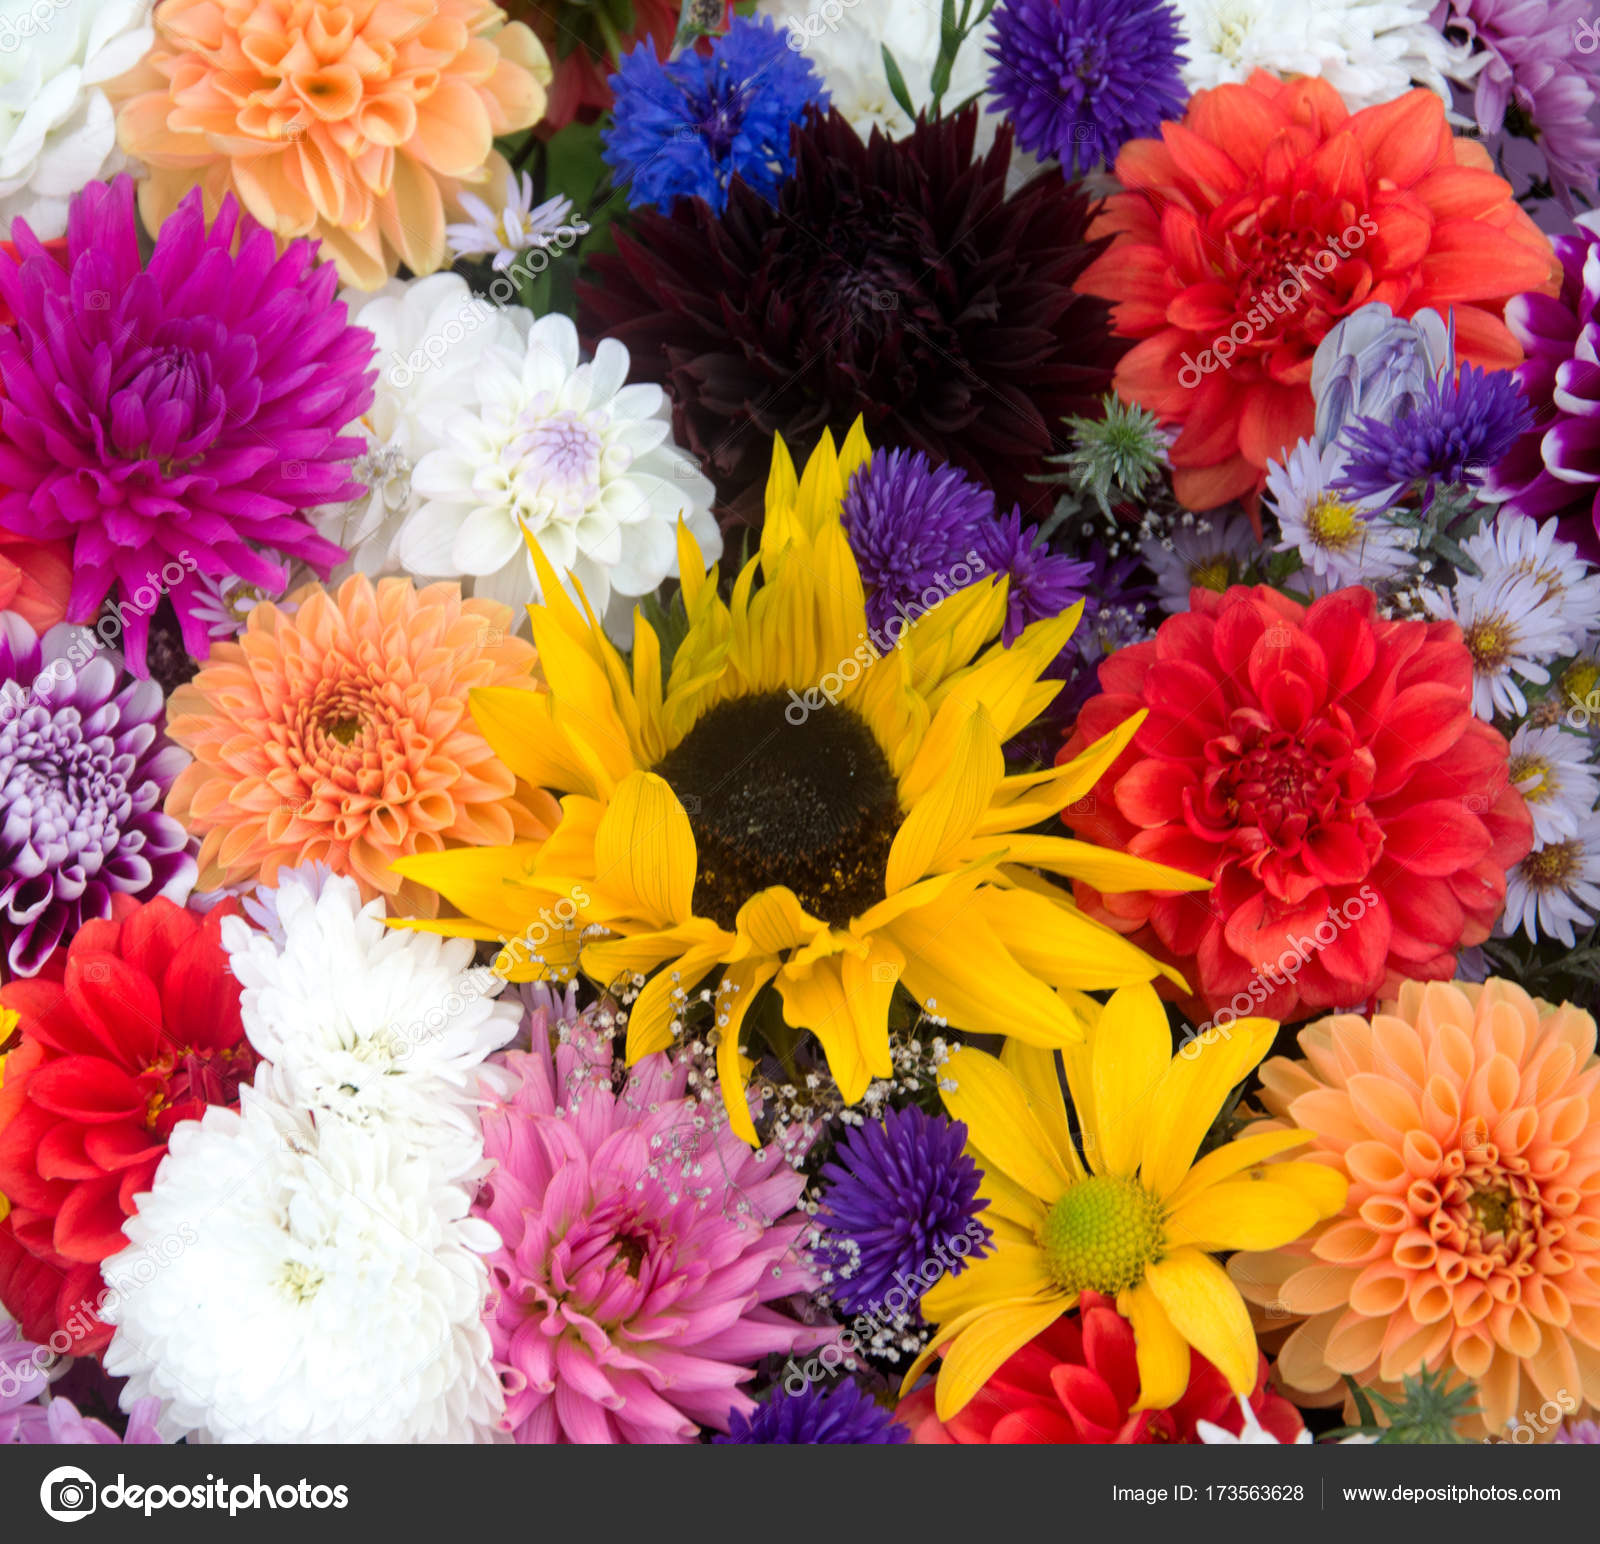 Multicolored spring flowers closeup bunch of colorful flowers or multicolored spring flowers closeup bunch of colorful flowers or flower bouquet with various flowers izmirmasajfo